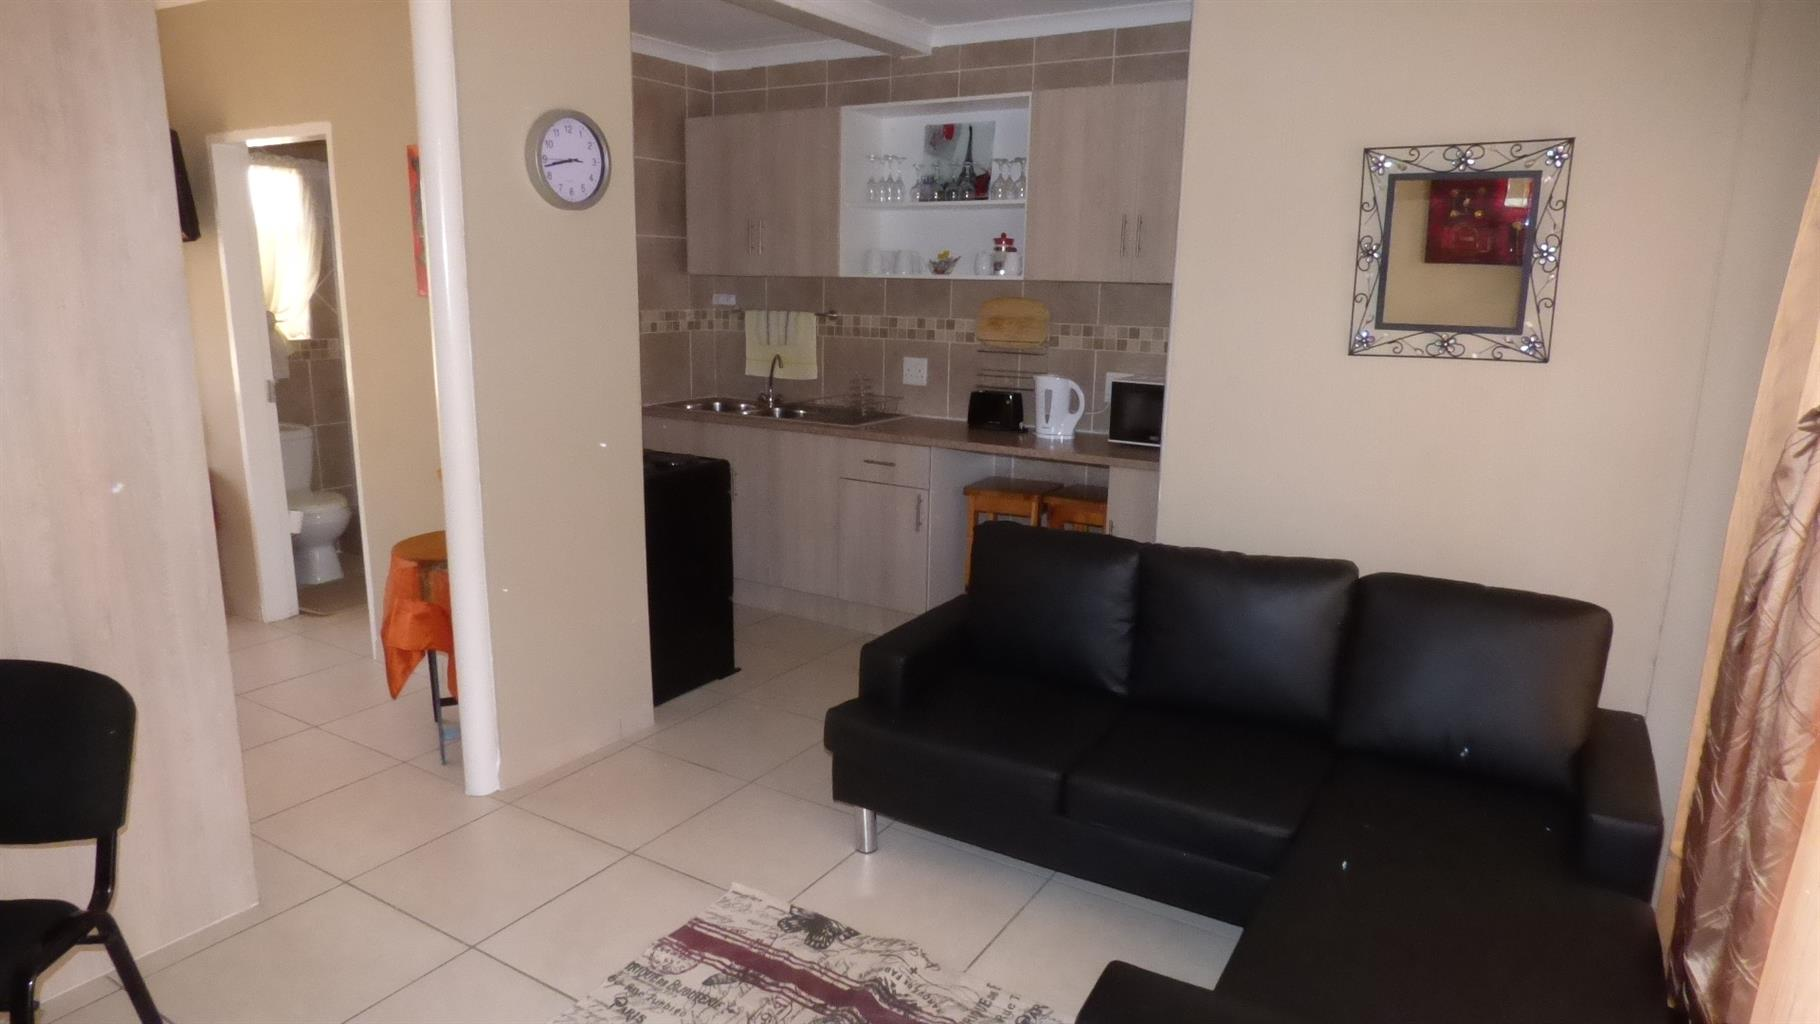 NORTHCLIFF; EXCECUTIVE ROOMS TO RENT. FULLY FURNISHED, SECURE AND SAFE